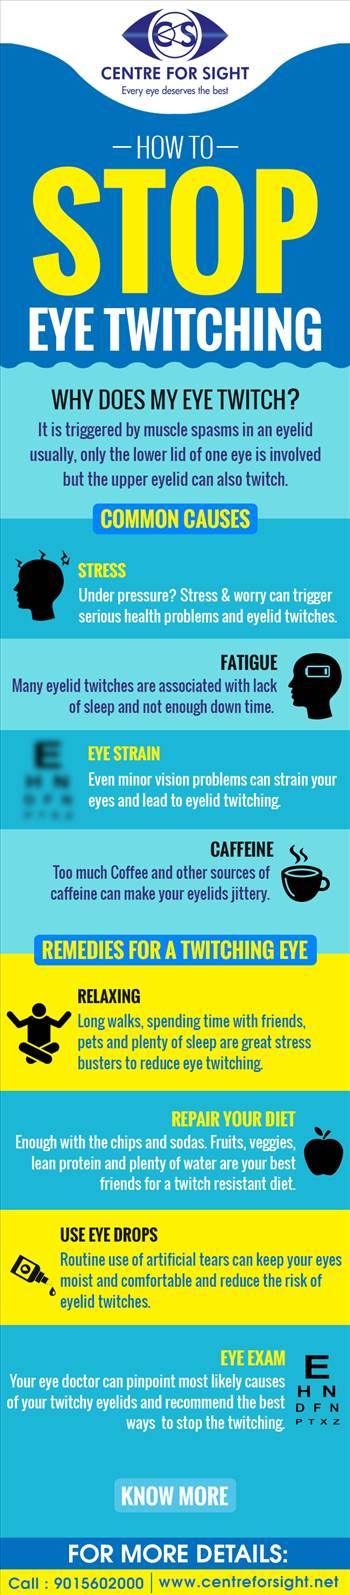 How to stop eye twitching.png by centreforsight